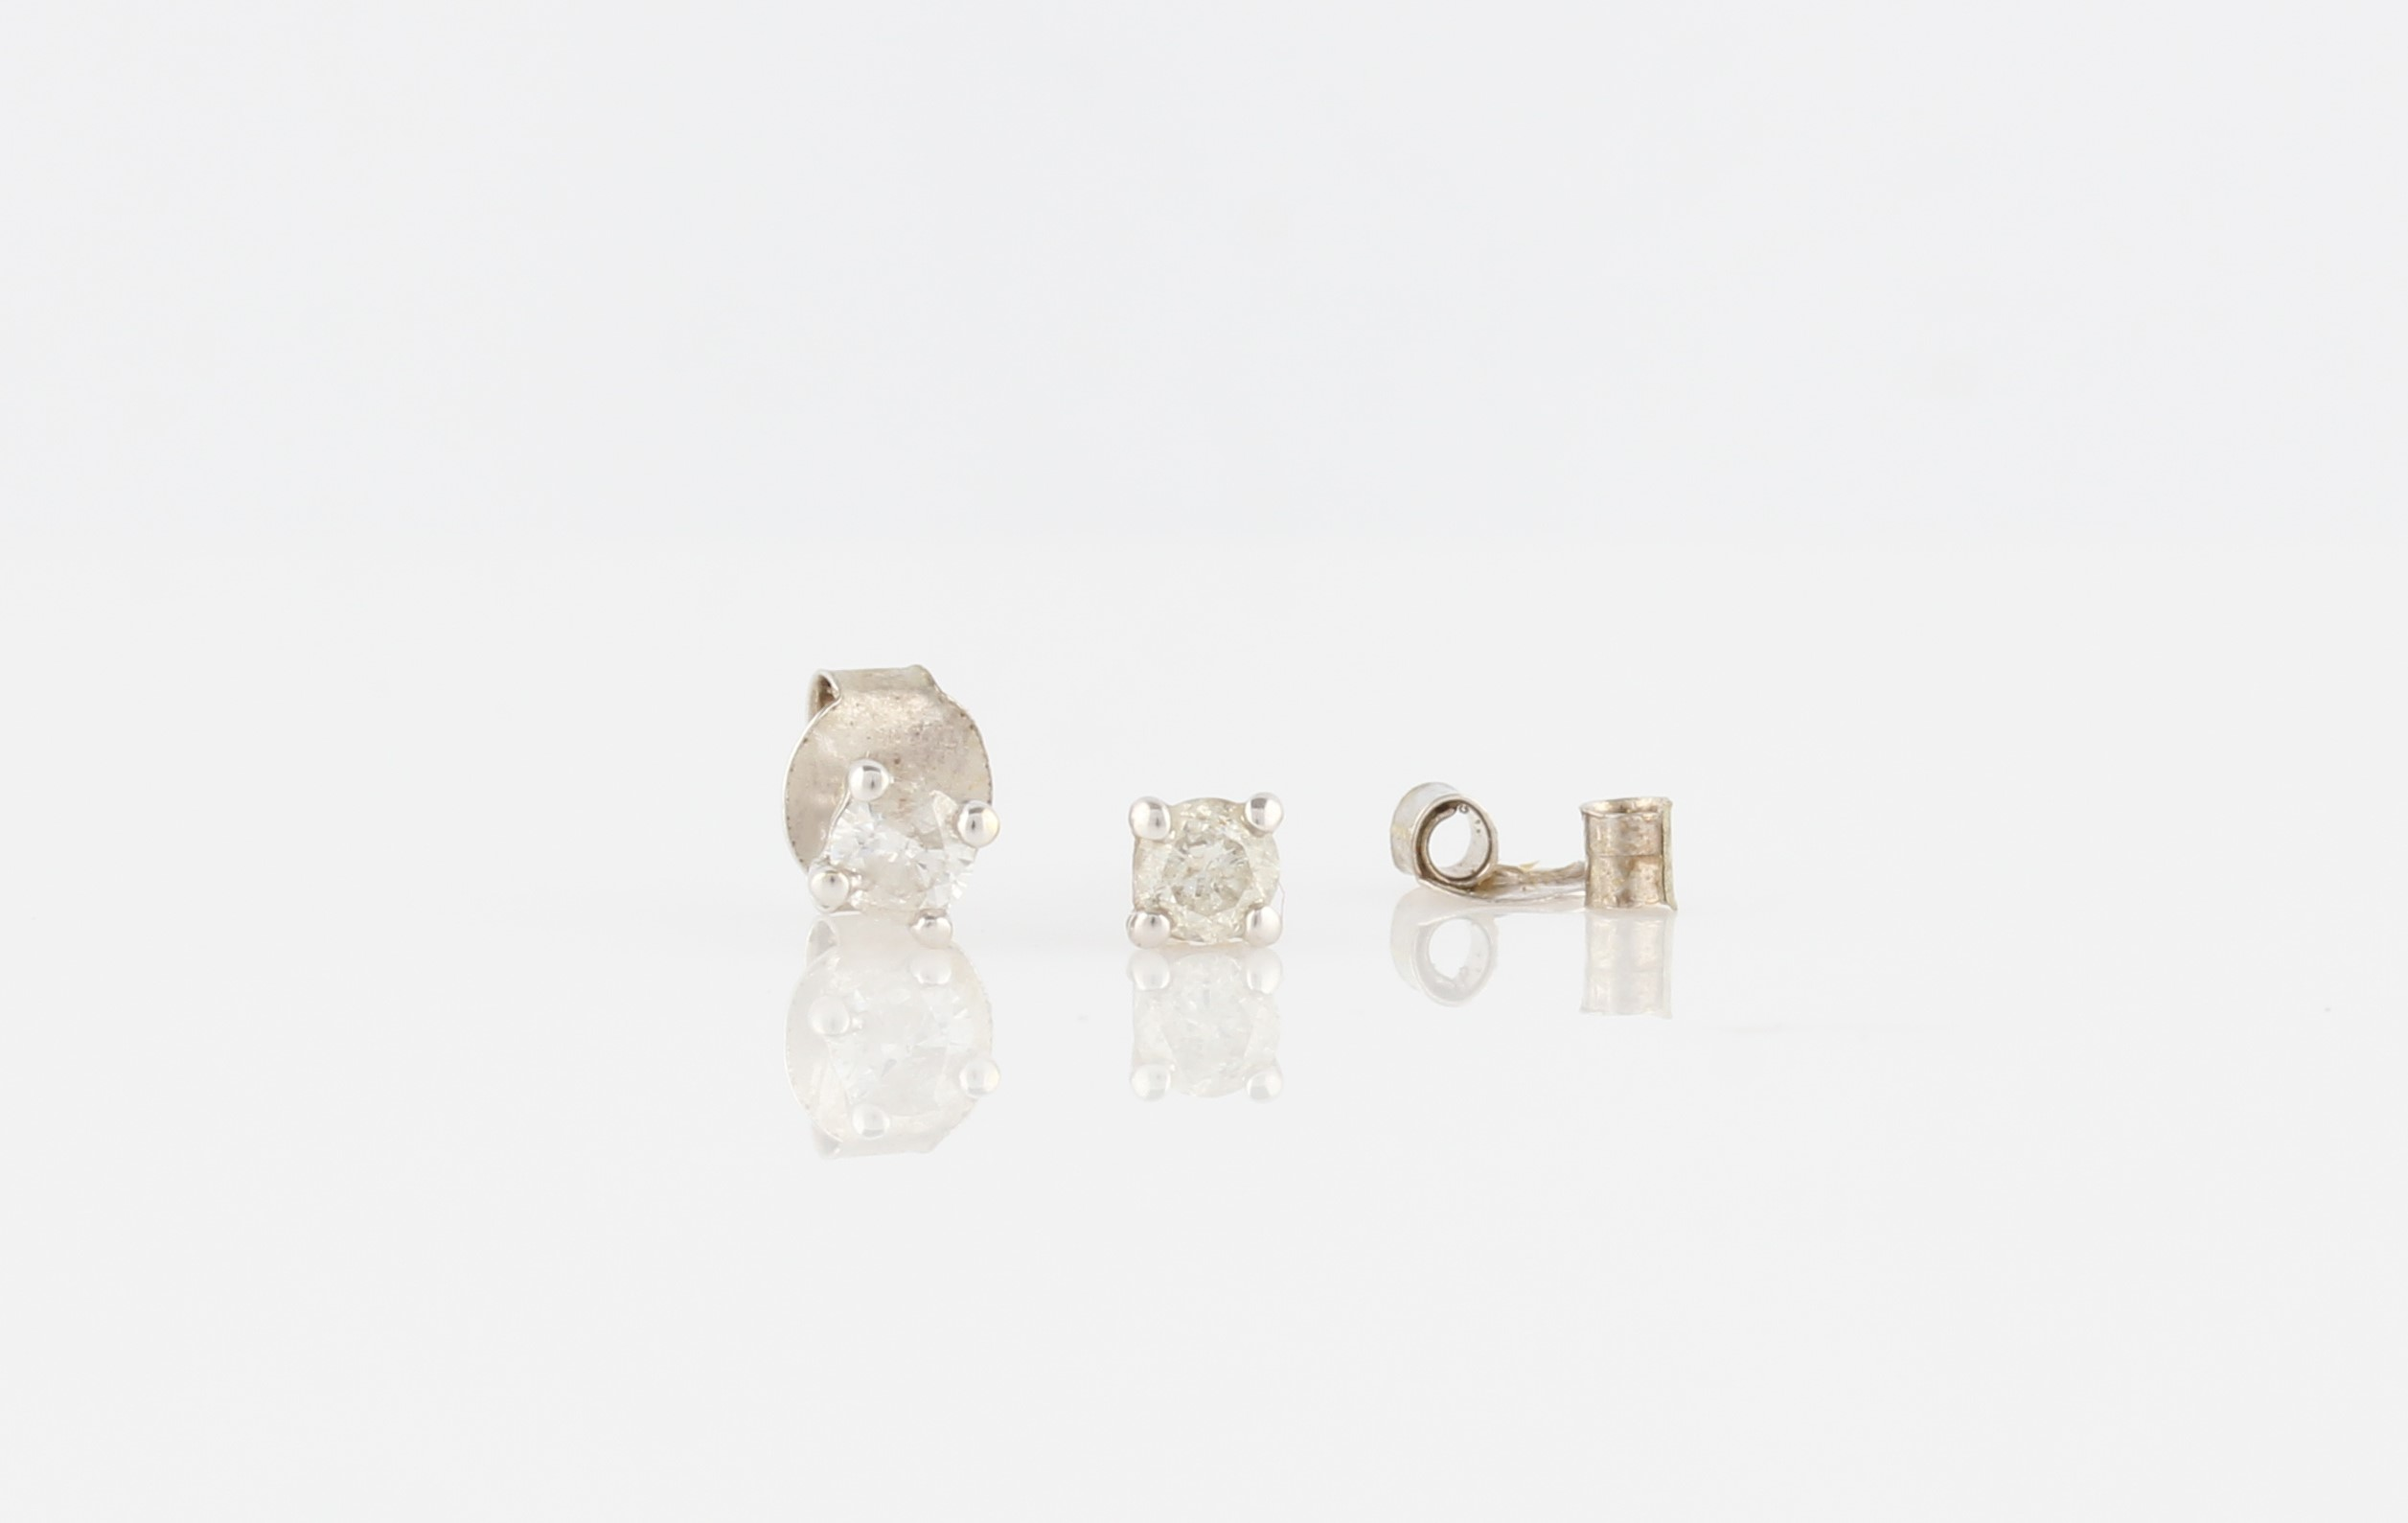 Lot 34 - A pair of diamond stud earrings, each set with a round brilliant cut diamond, measuring approx. 0.